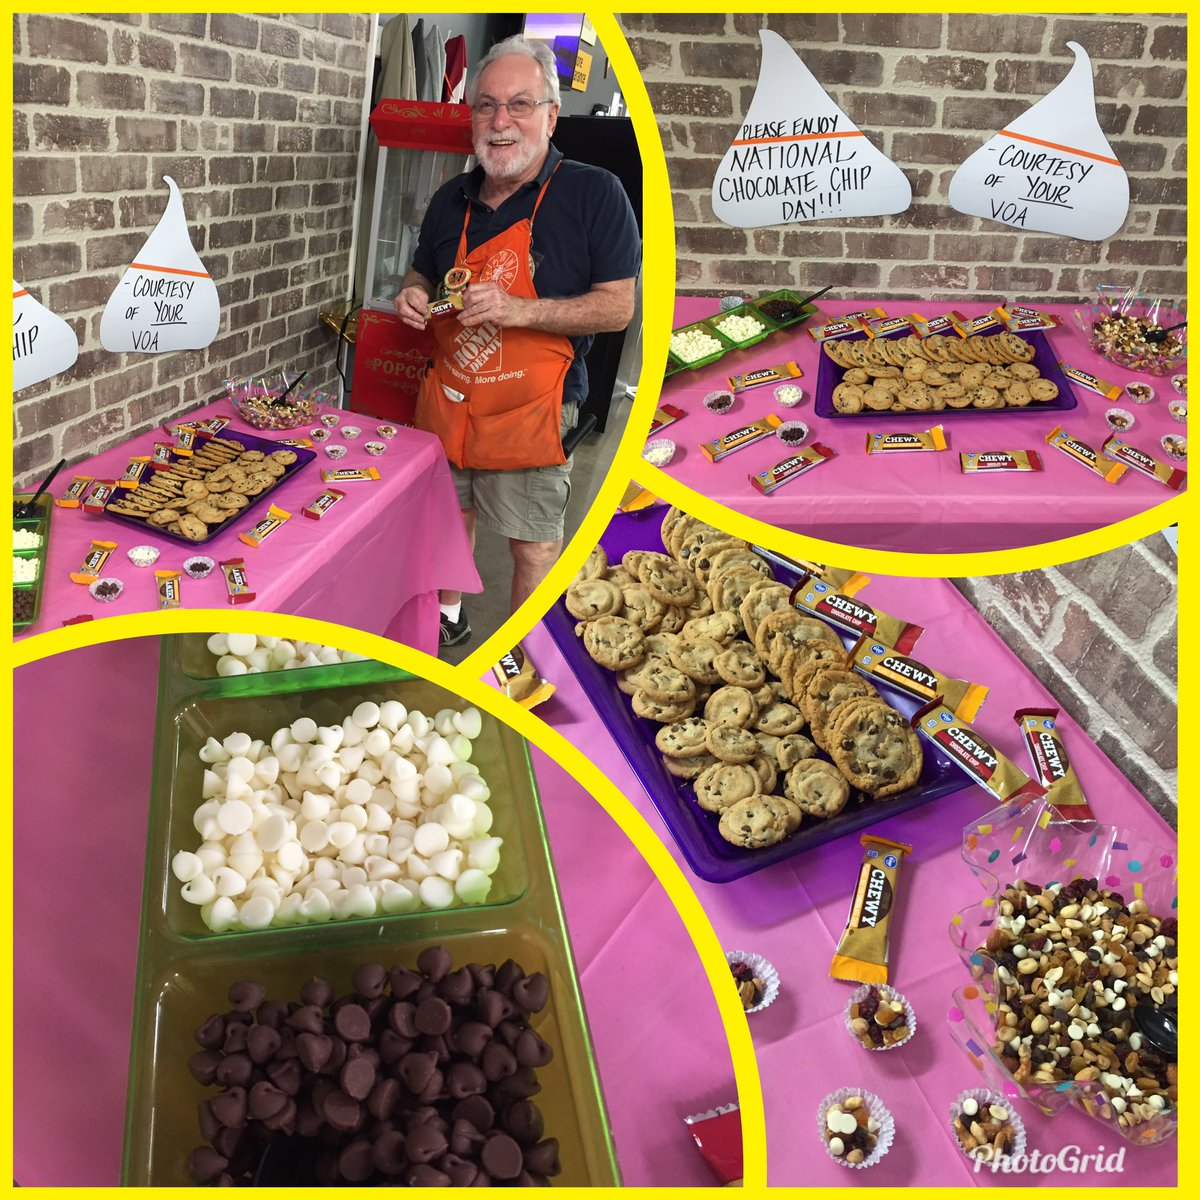 0587 celebrating National Chocolate Chip day, courtesy of the VOA! #NationalChocolateChipDay @Nickb504 @CarpenterTrina1 @asm_ddodd @Mitch_homedepot @CDawson601<br>http://pic.twitter.com/N3CaSltK2x